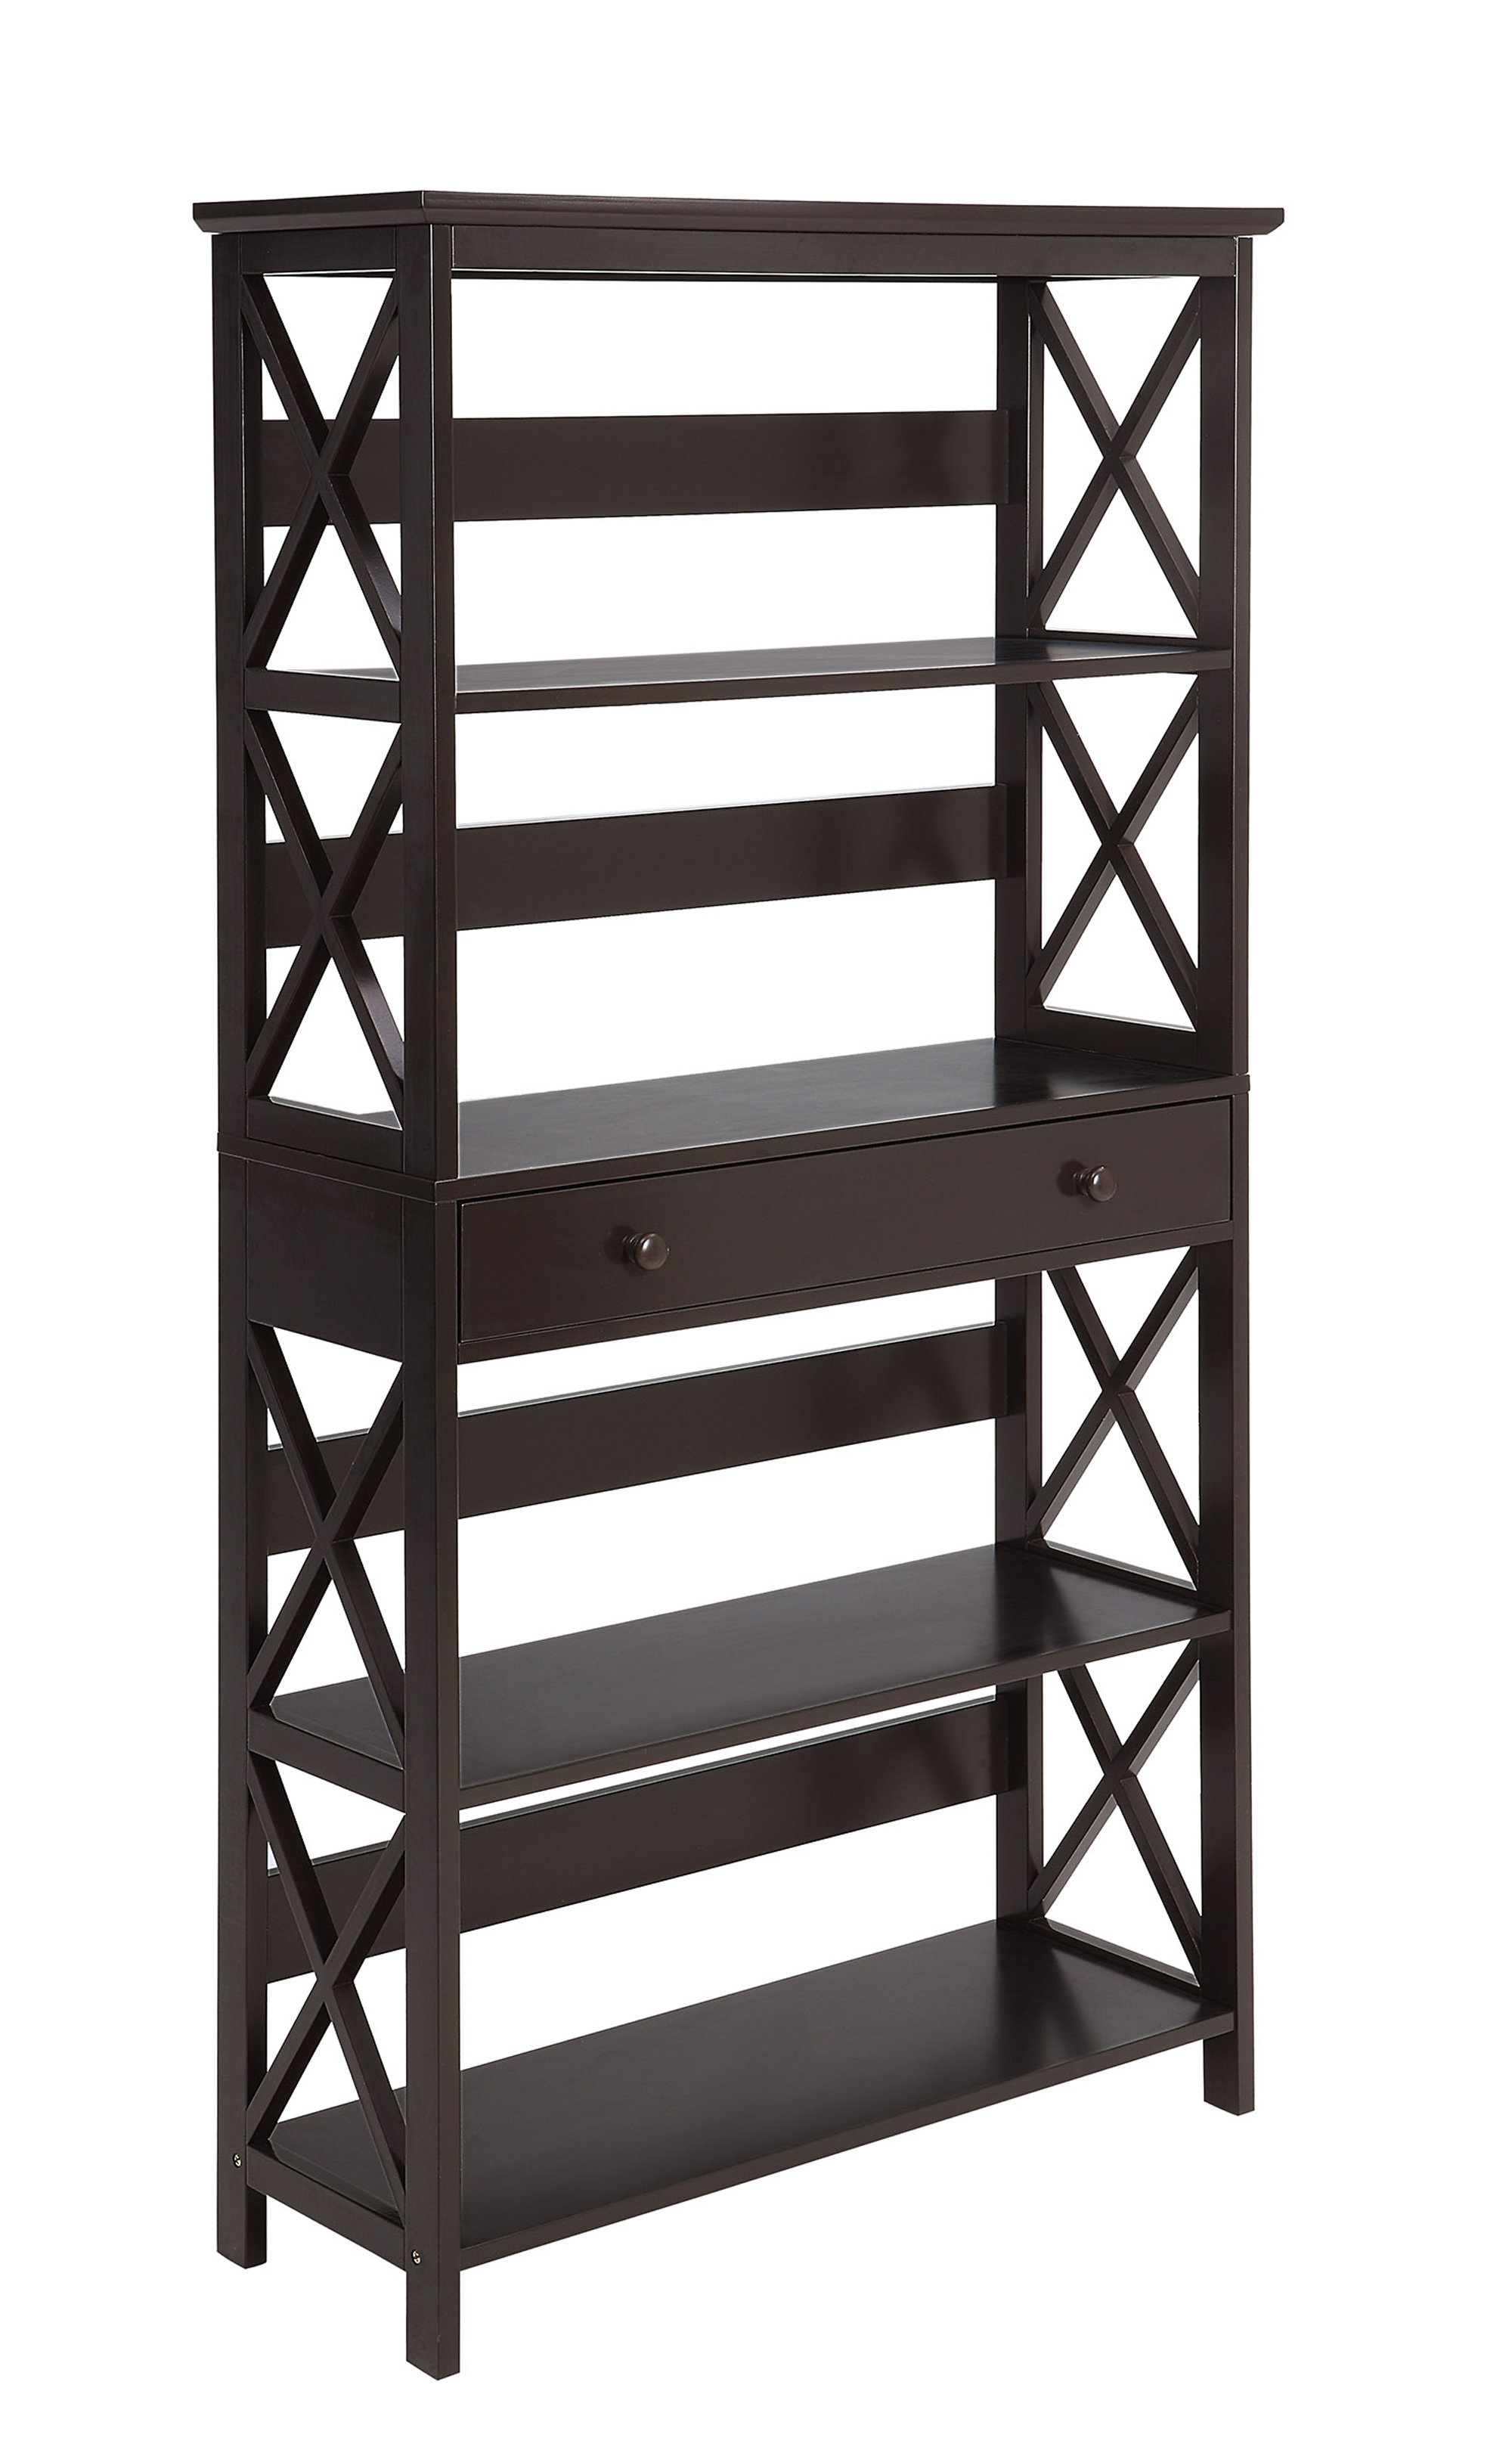 Beachcrest Home Gracelynn 5 Tier Etagere Bookcase Intended For Fashionable Gracelynn 5 Tier Etagere Bookcases (Gallery 9 of 20)